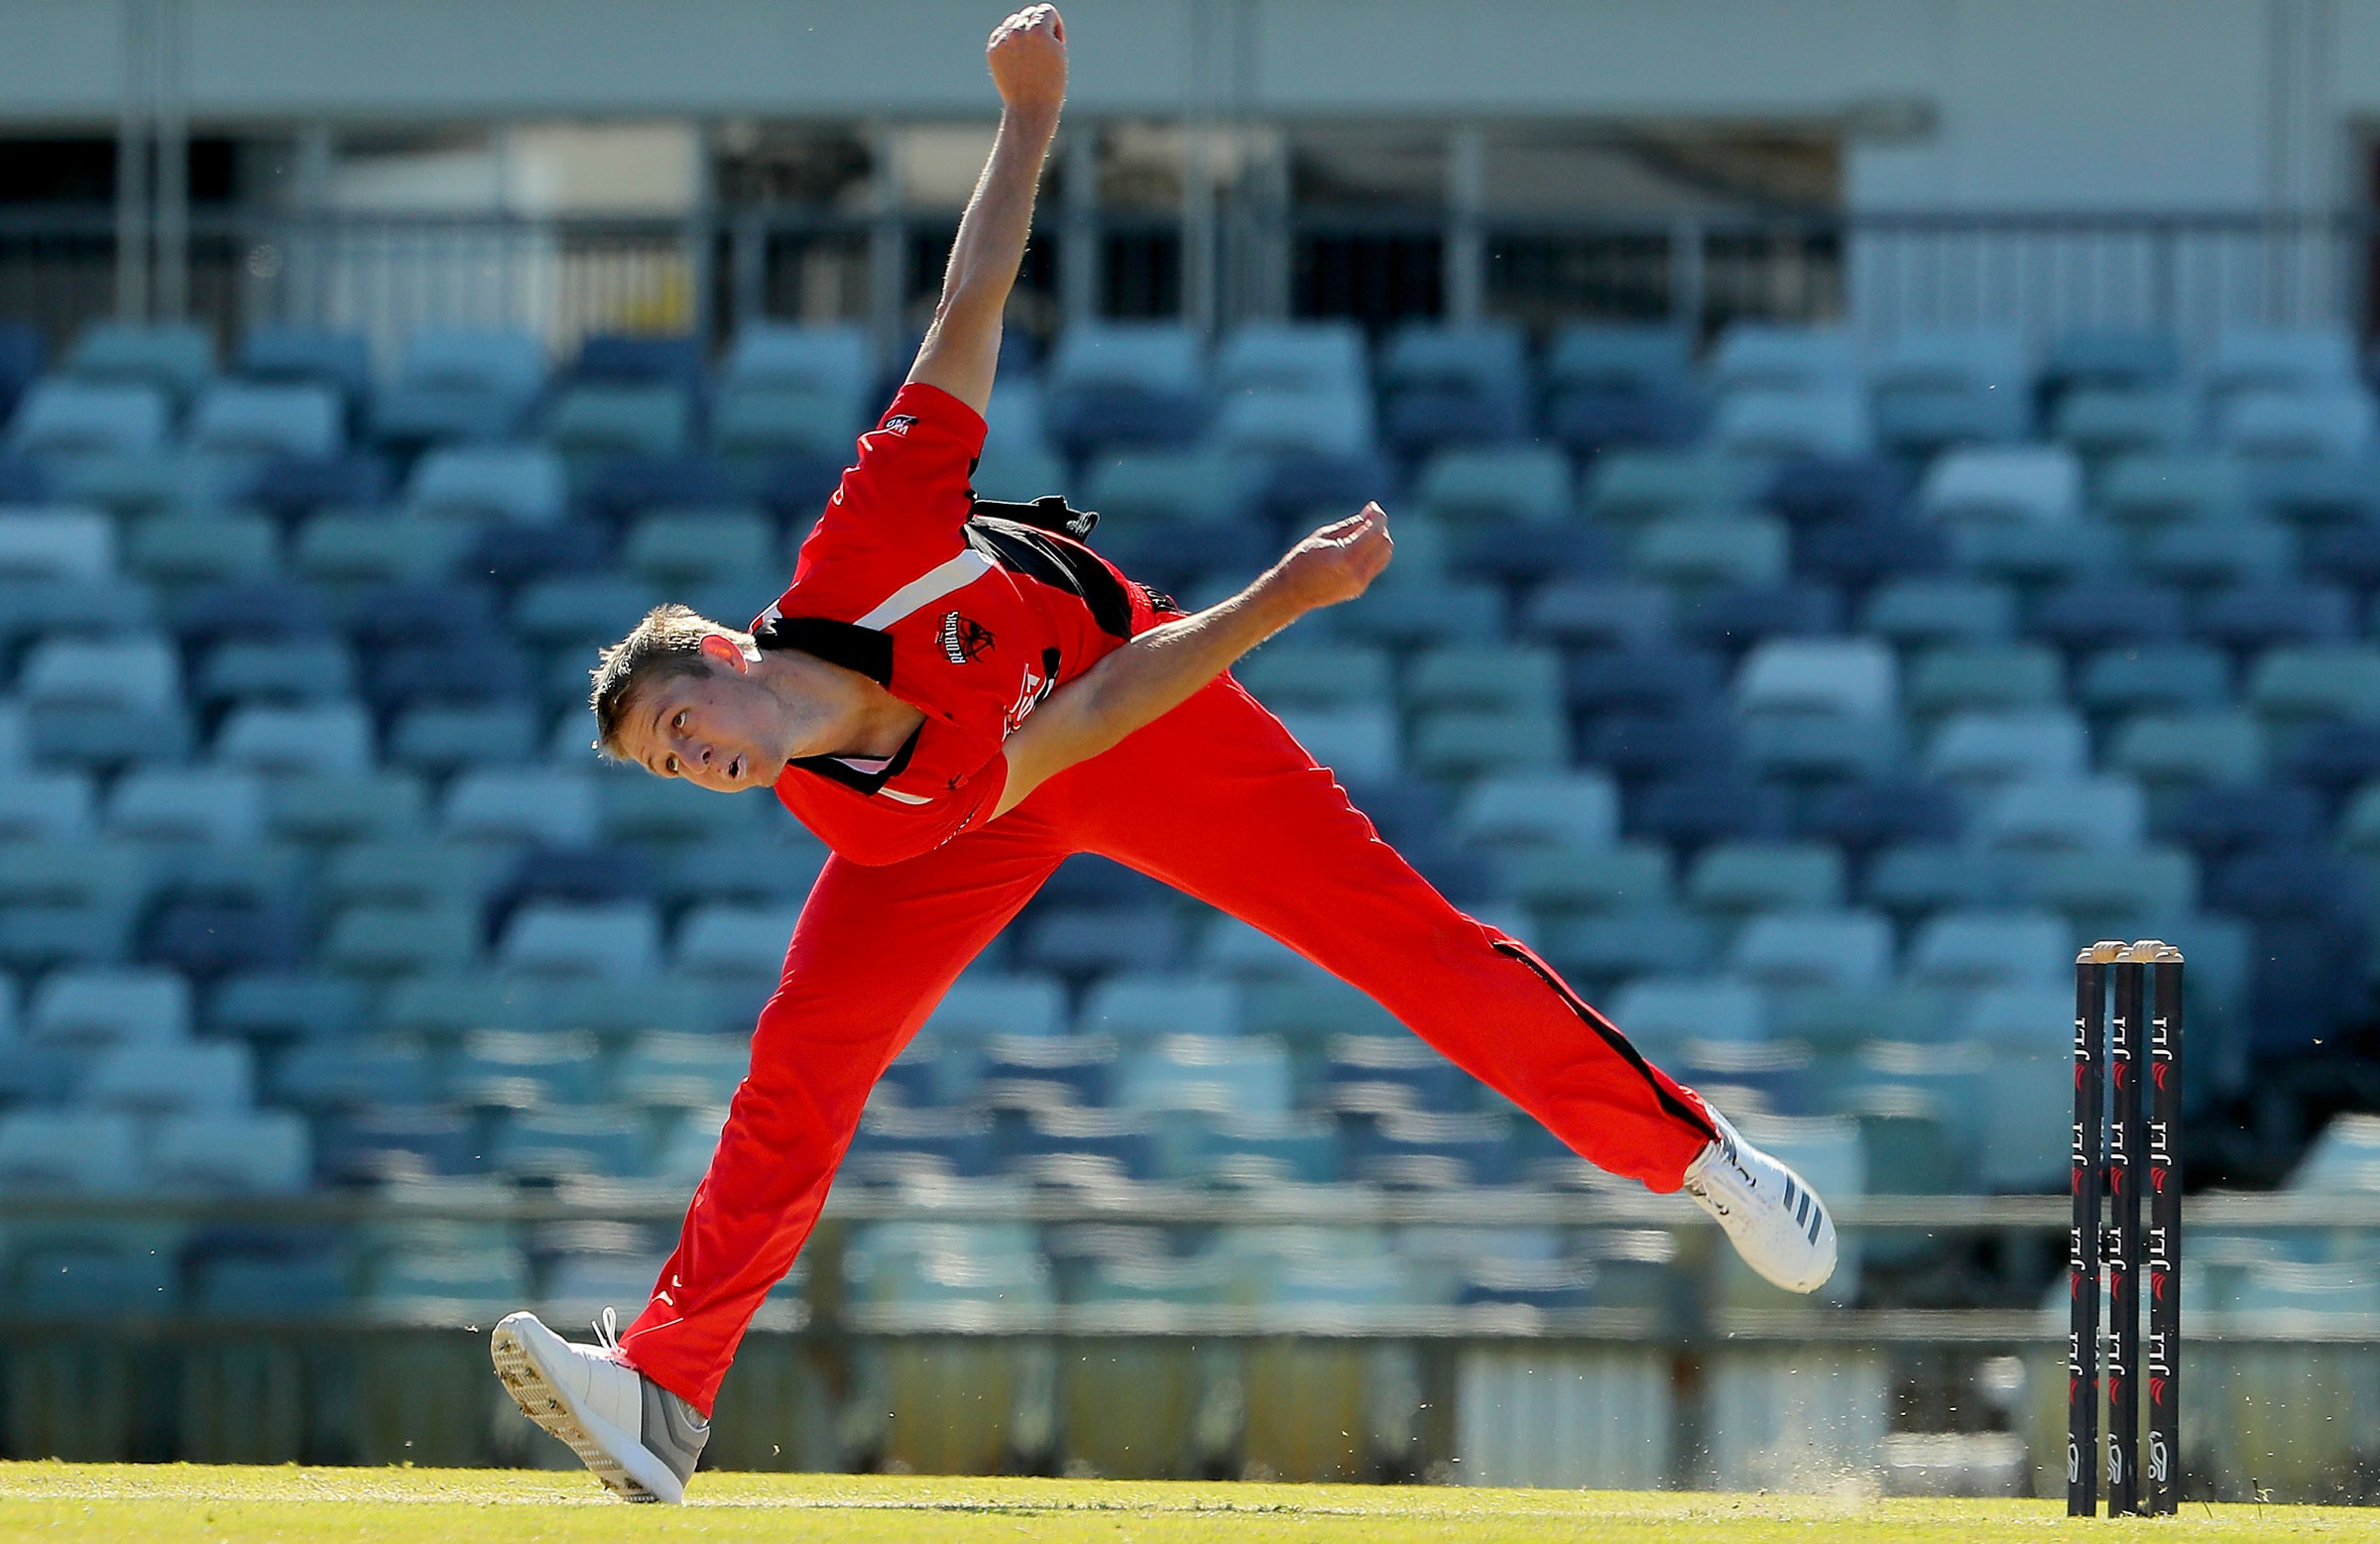 Joe Mennie in action during the JLT Cup